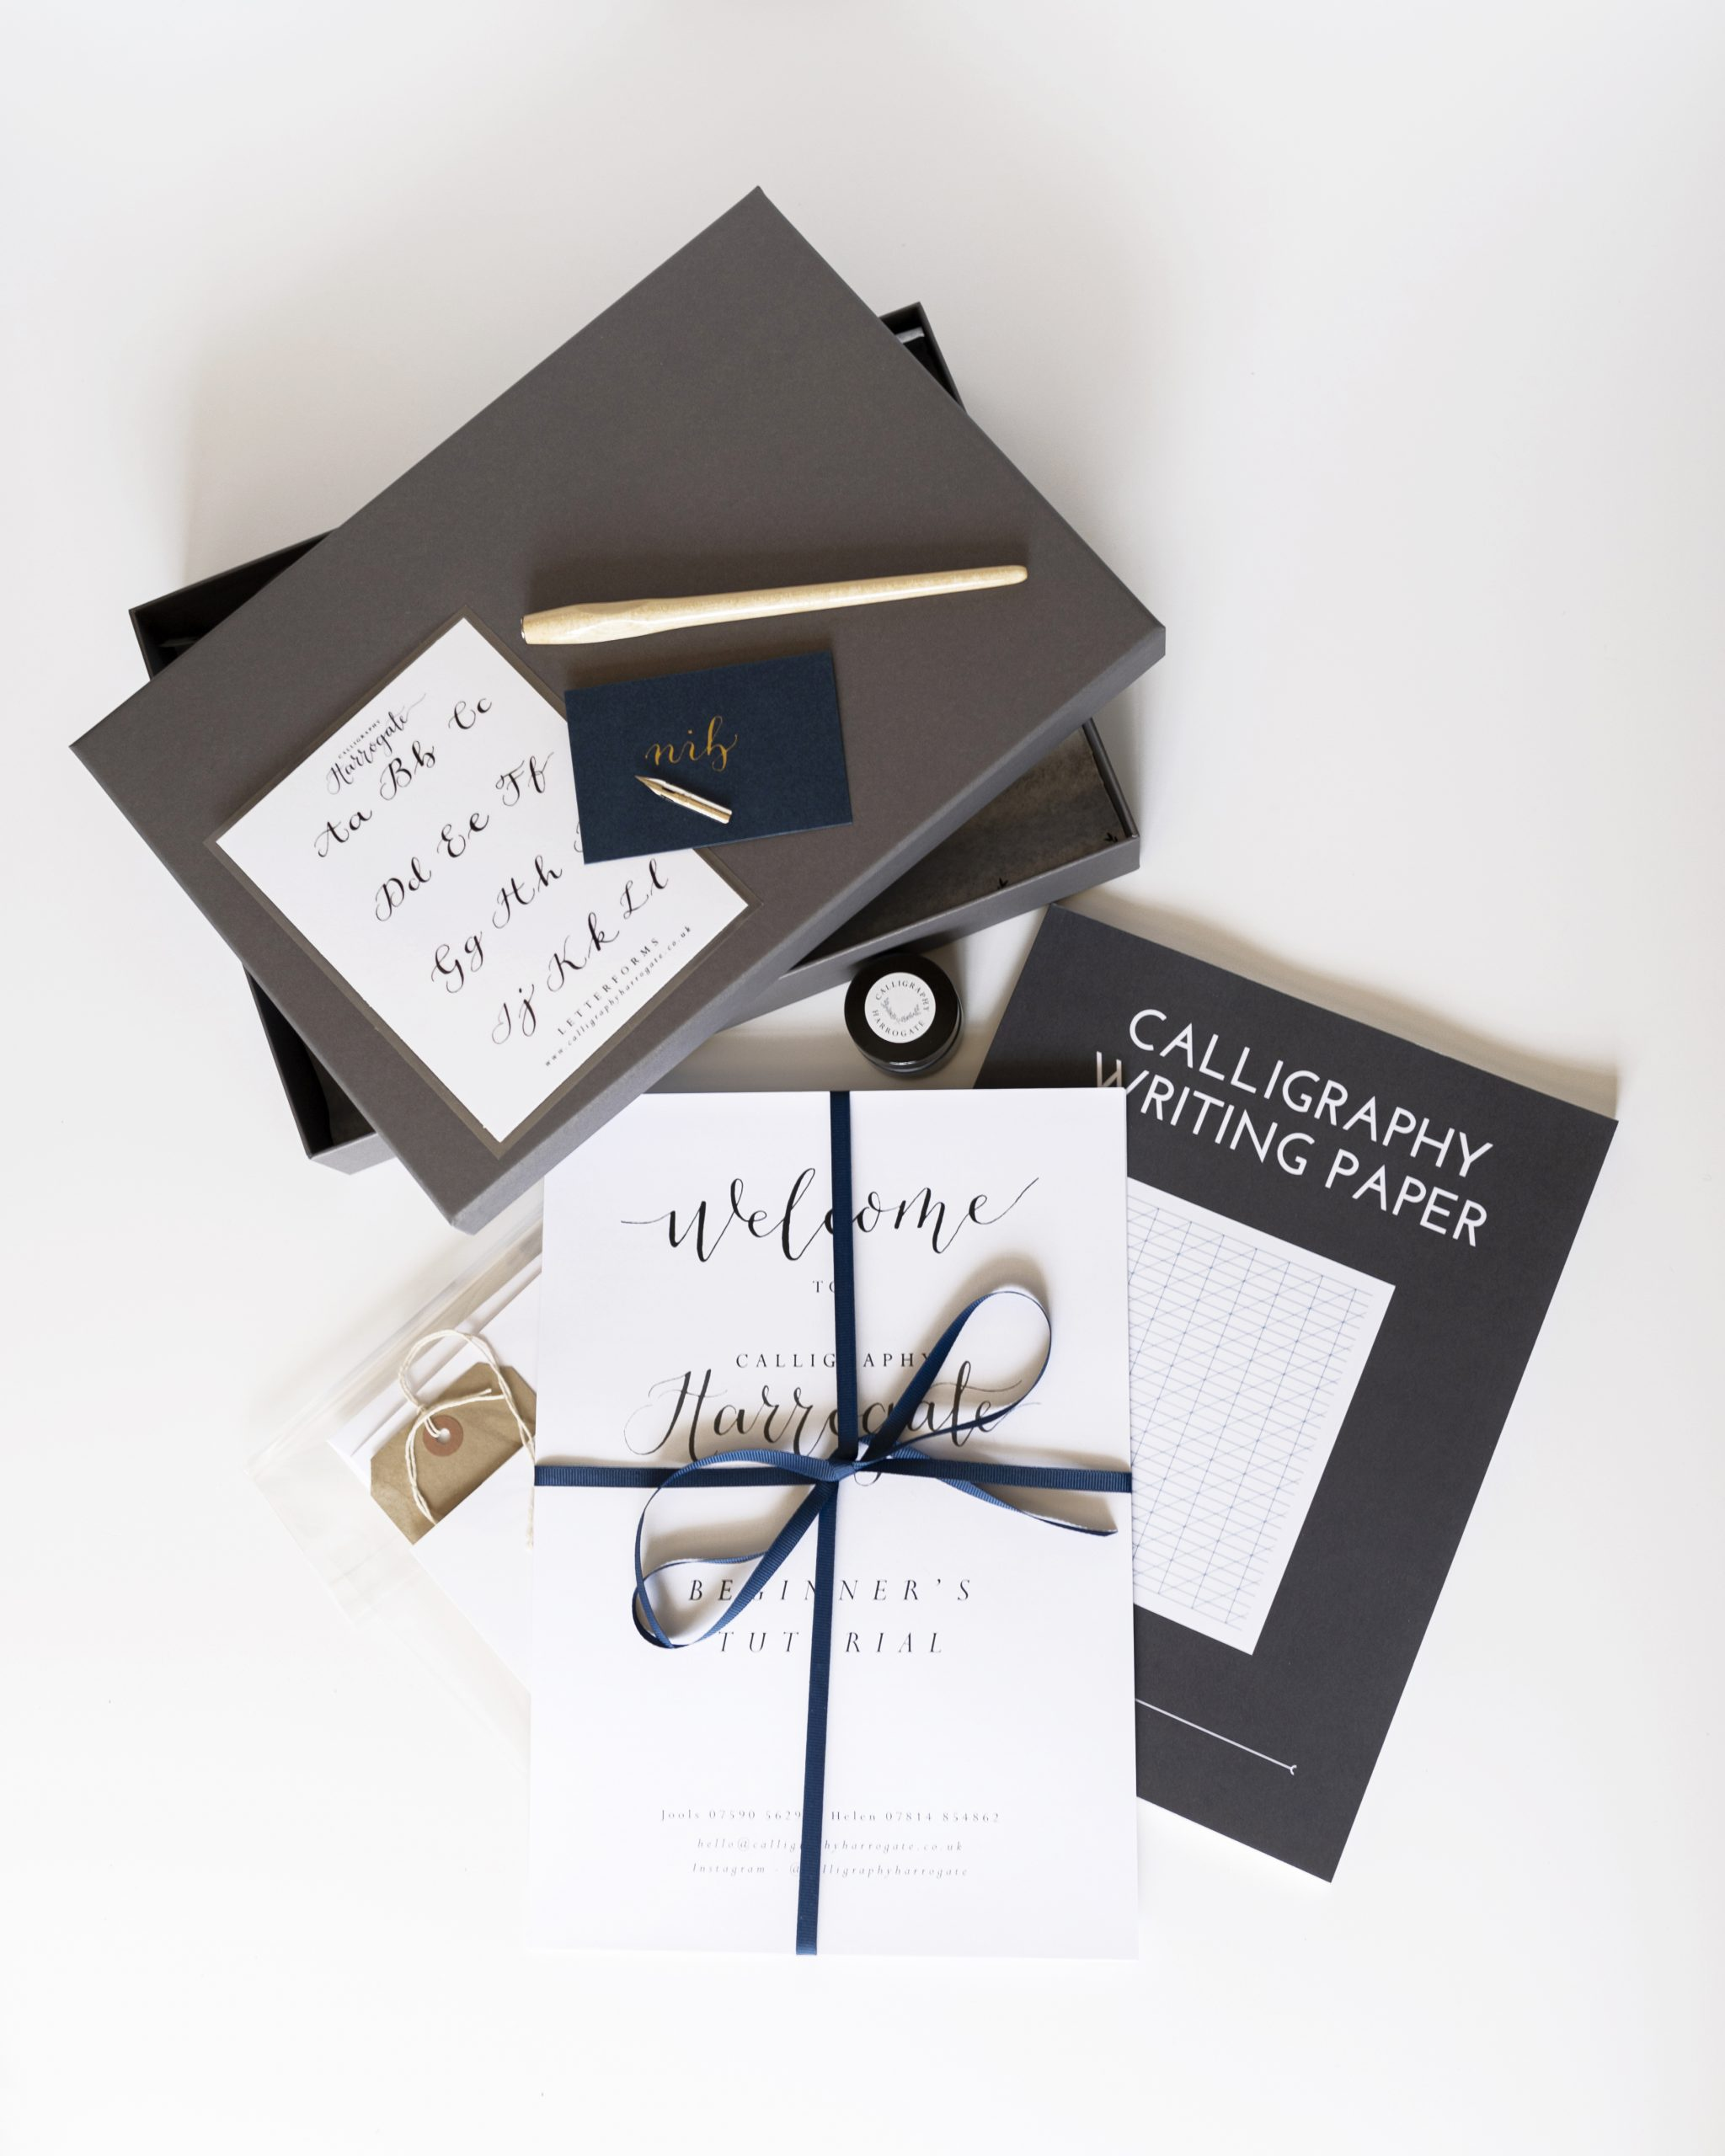 Calligraphy and stationery supplies Harrogate